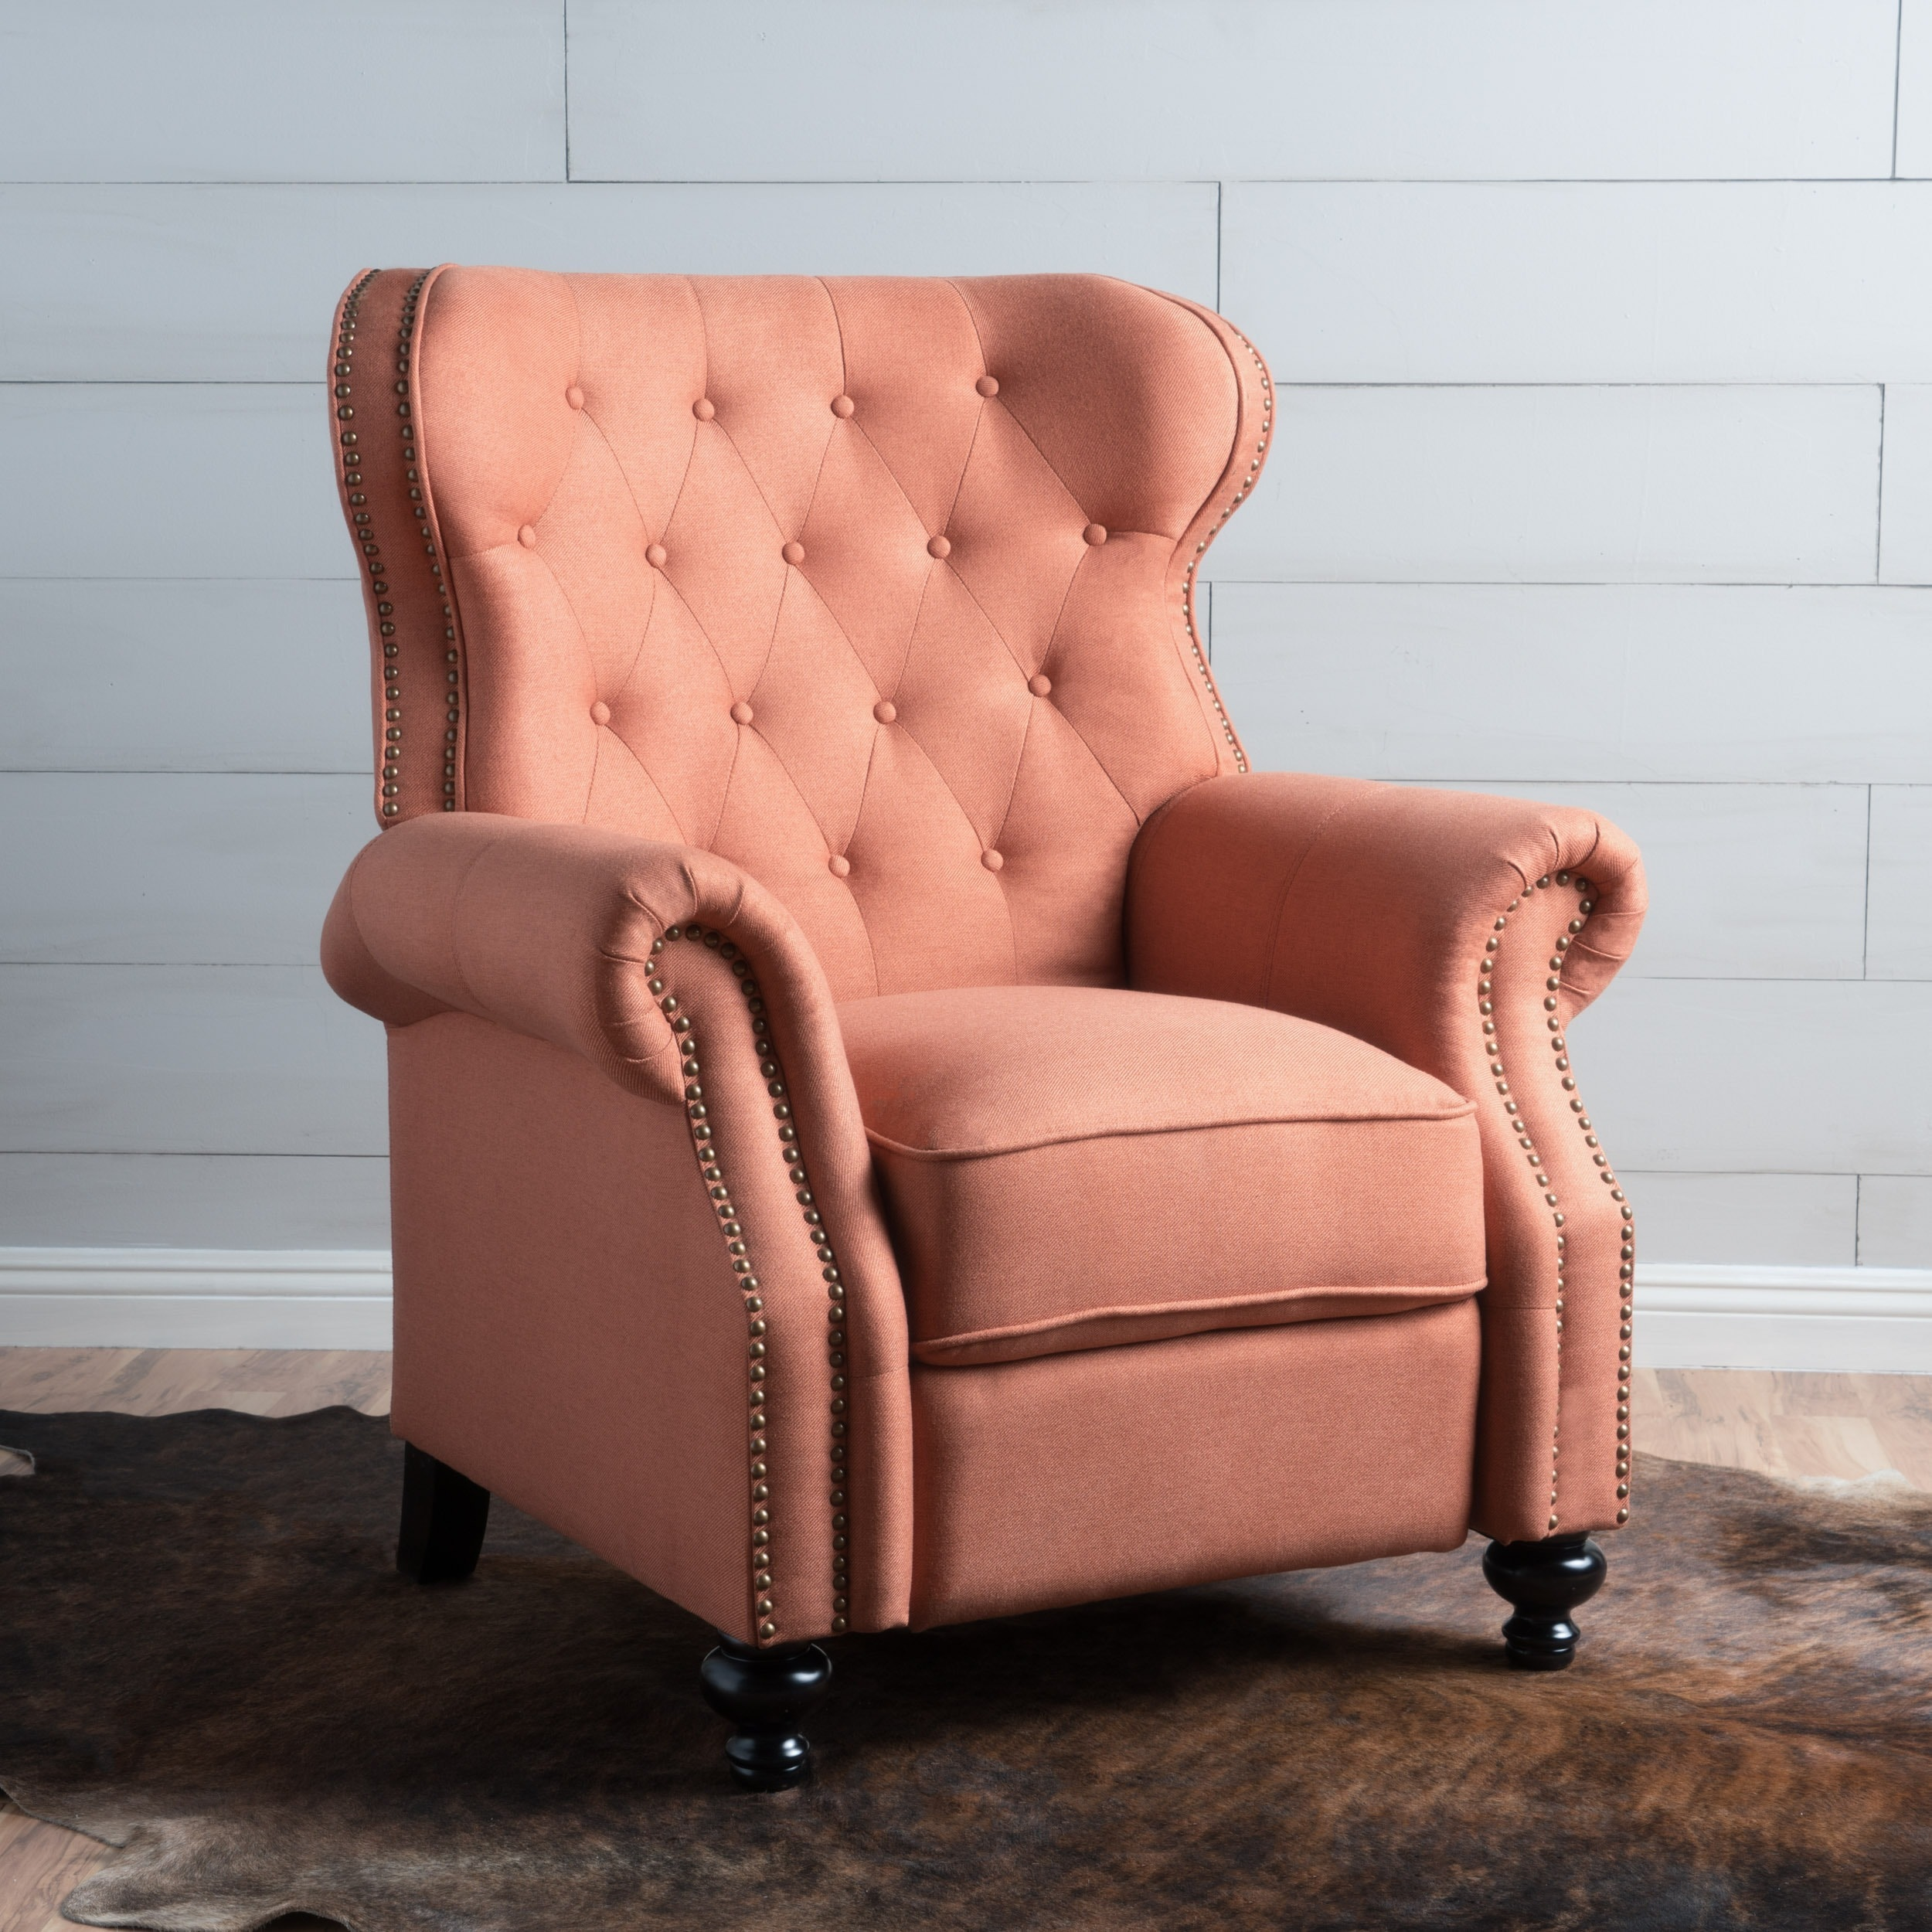 Walder Tufted Fabric Recliner Club Chair By Christopher Knight Home On Free Shipping Today 15279317